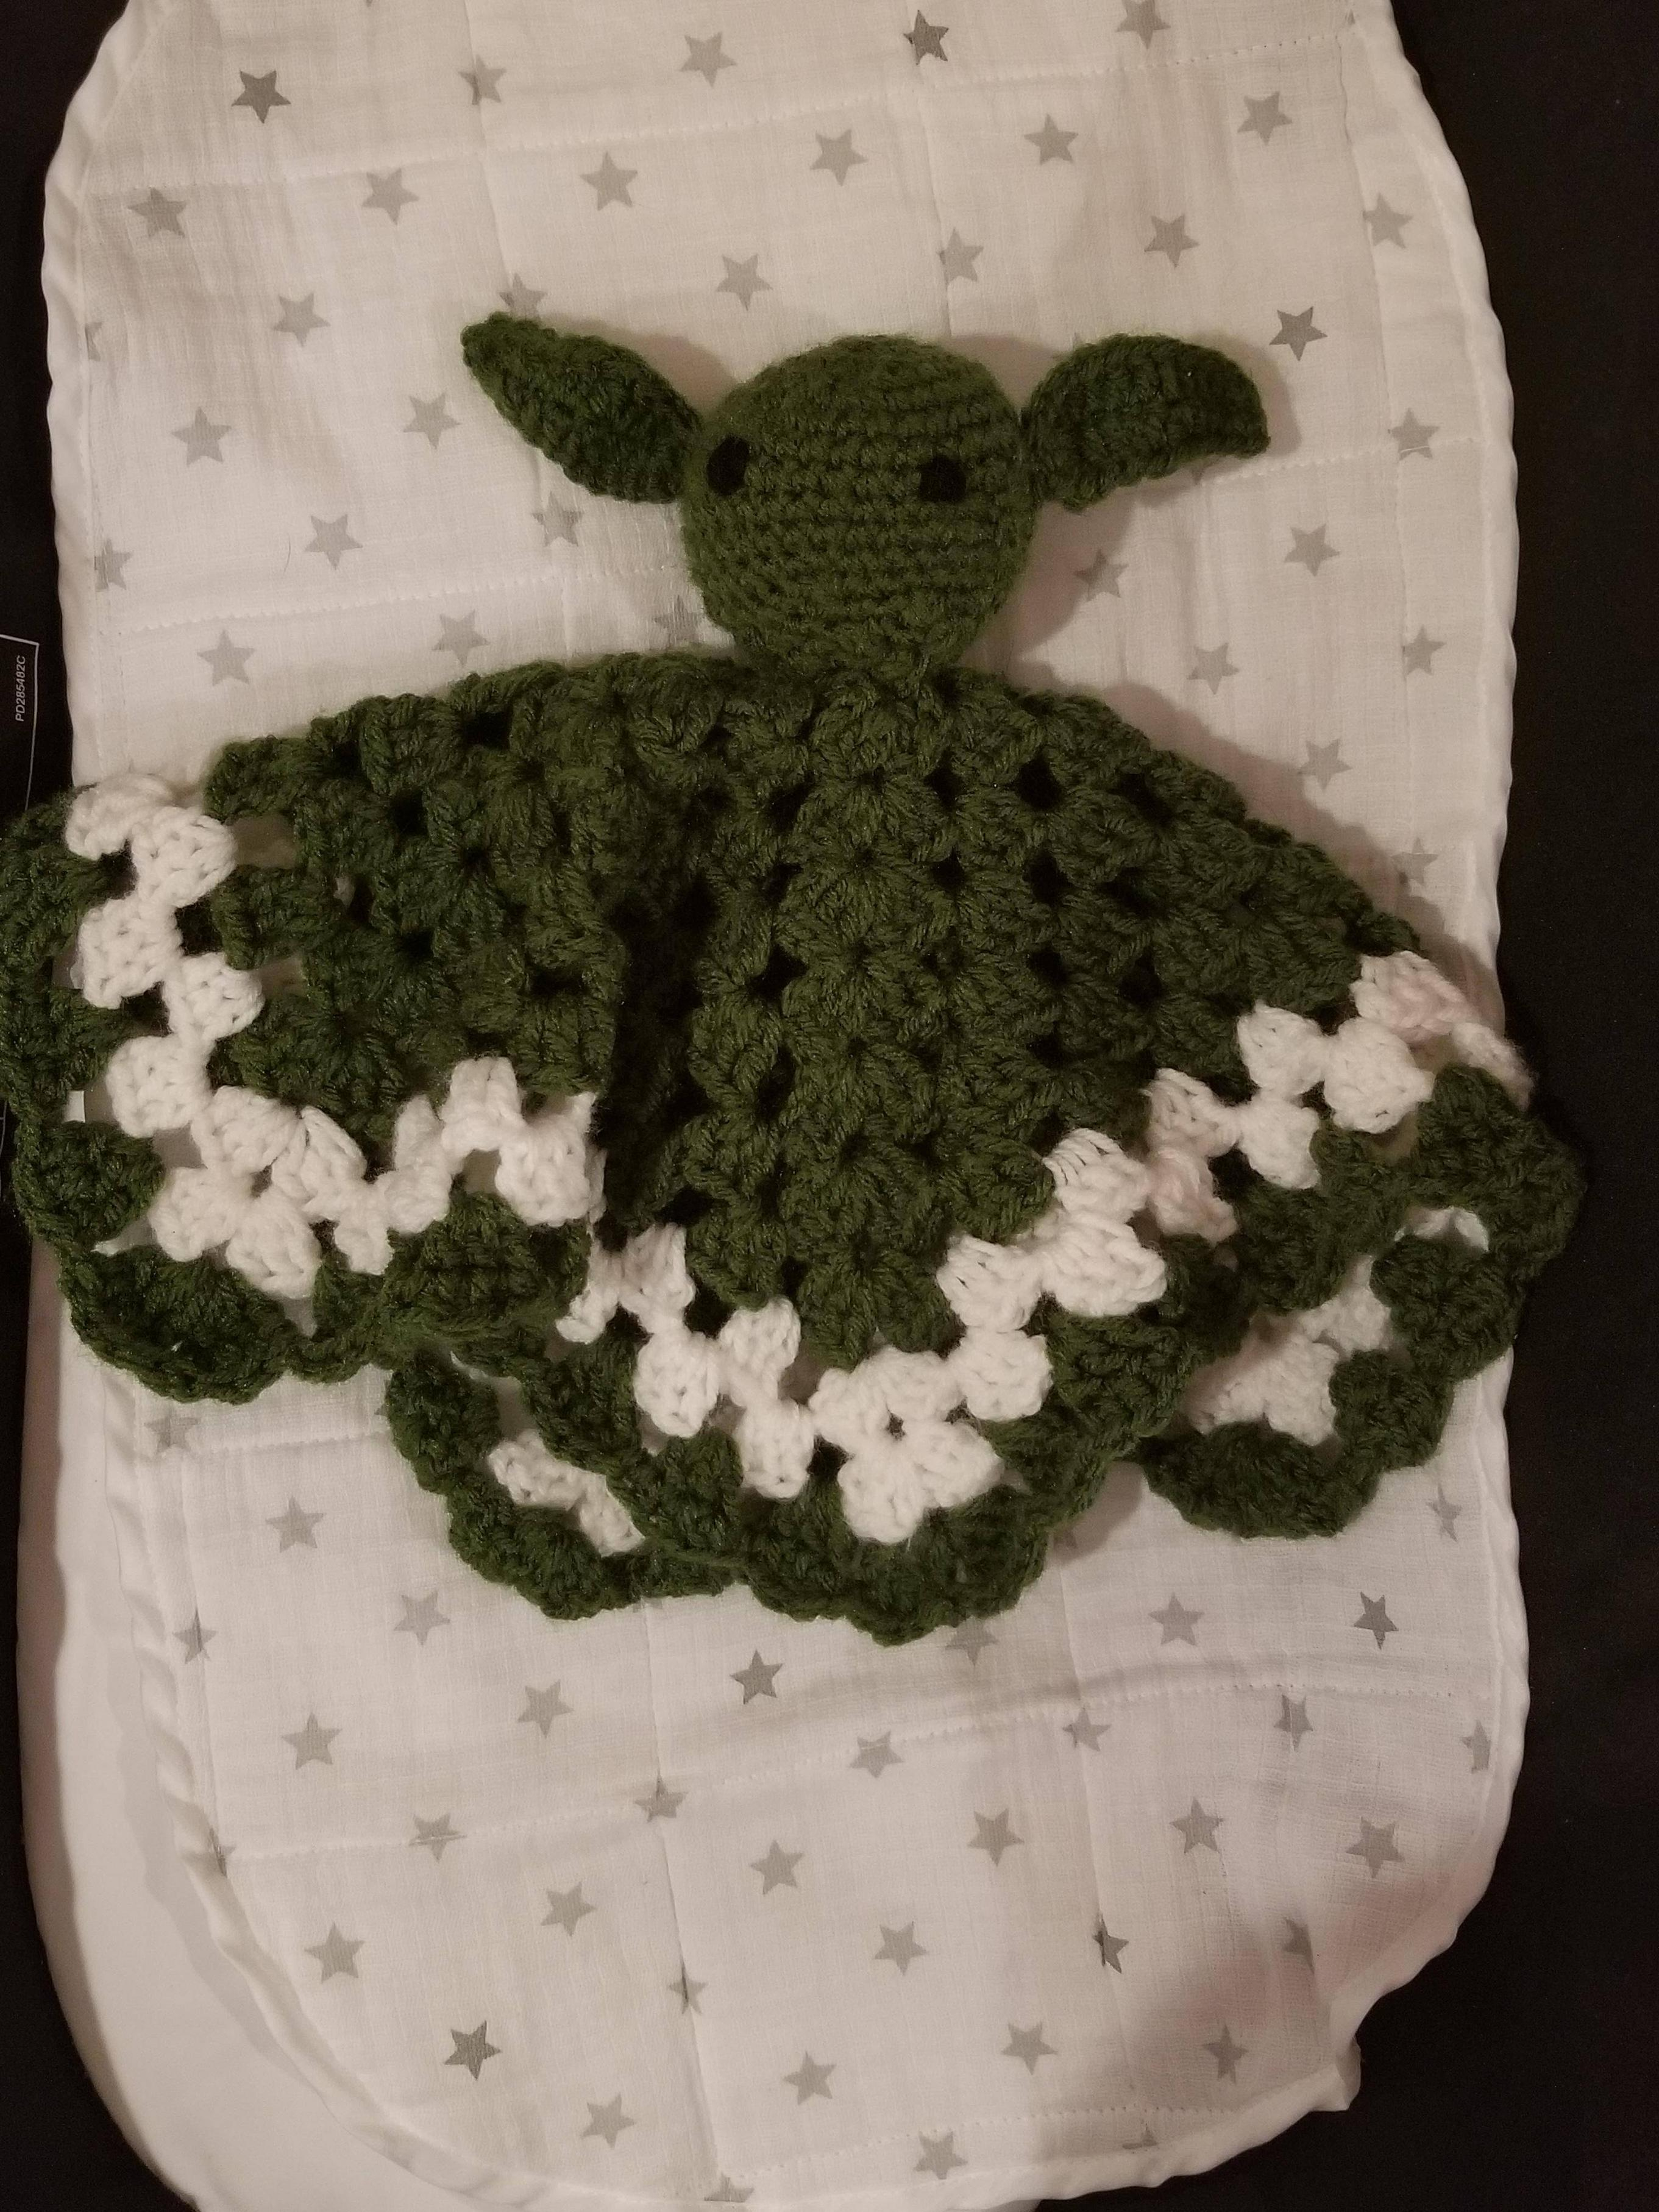 My mother crocheted this Yoda baby blanket for our first child. Thought you guys here would appreciate this.